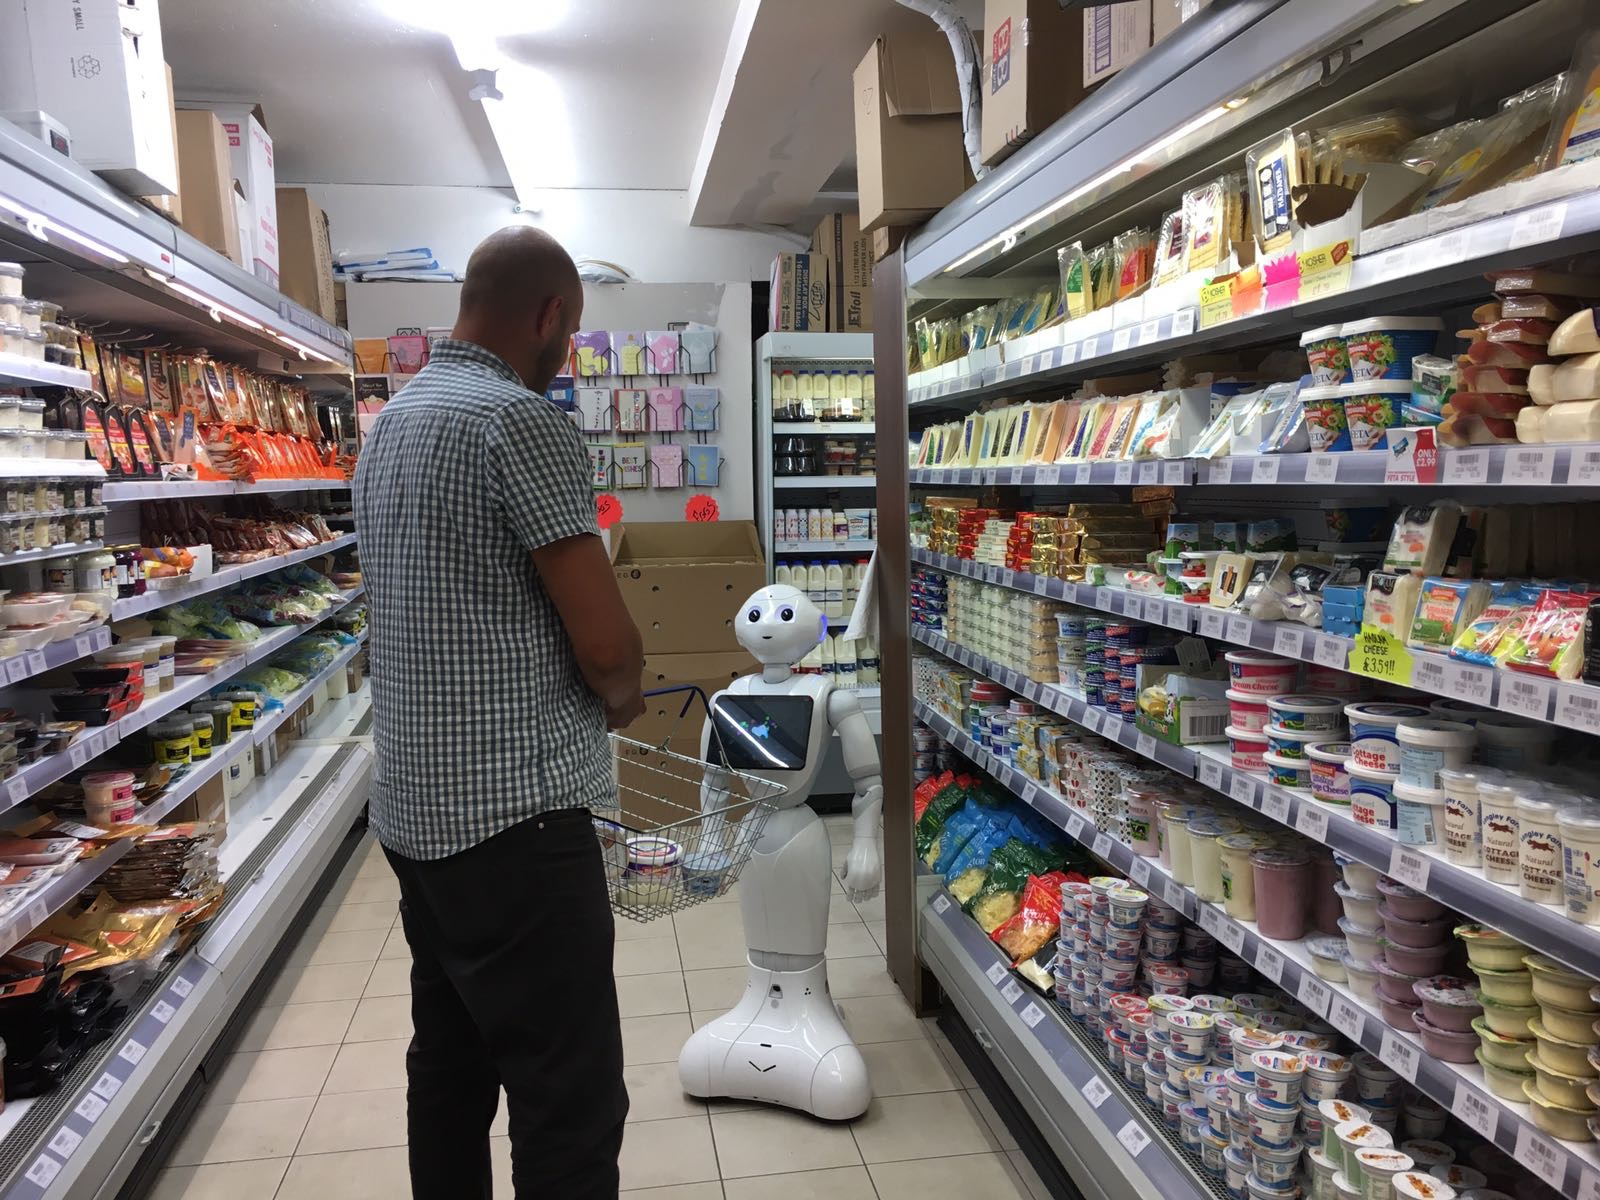 Copy of Copy of Copy of Copy of Robot Retail Assistant